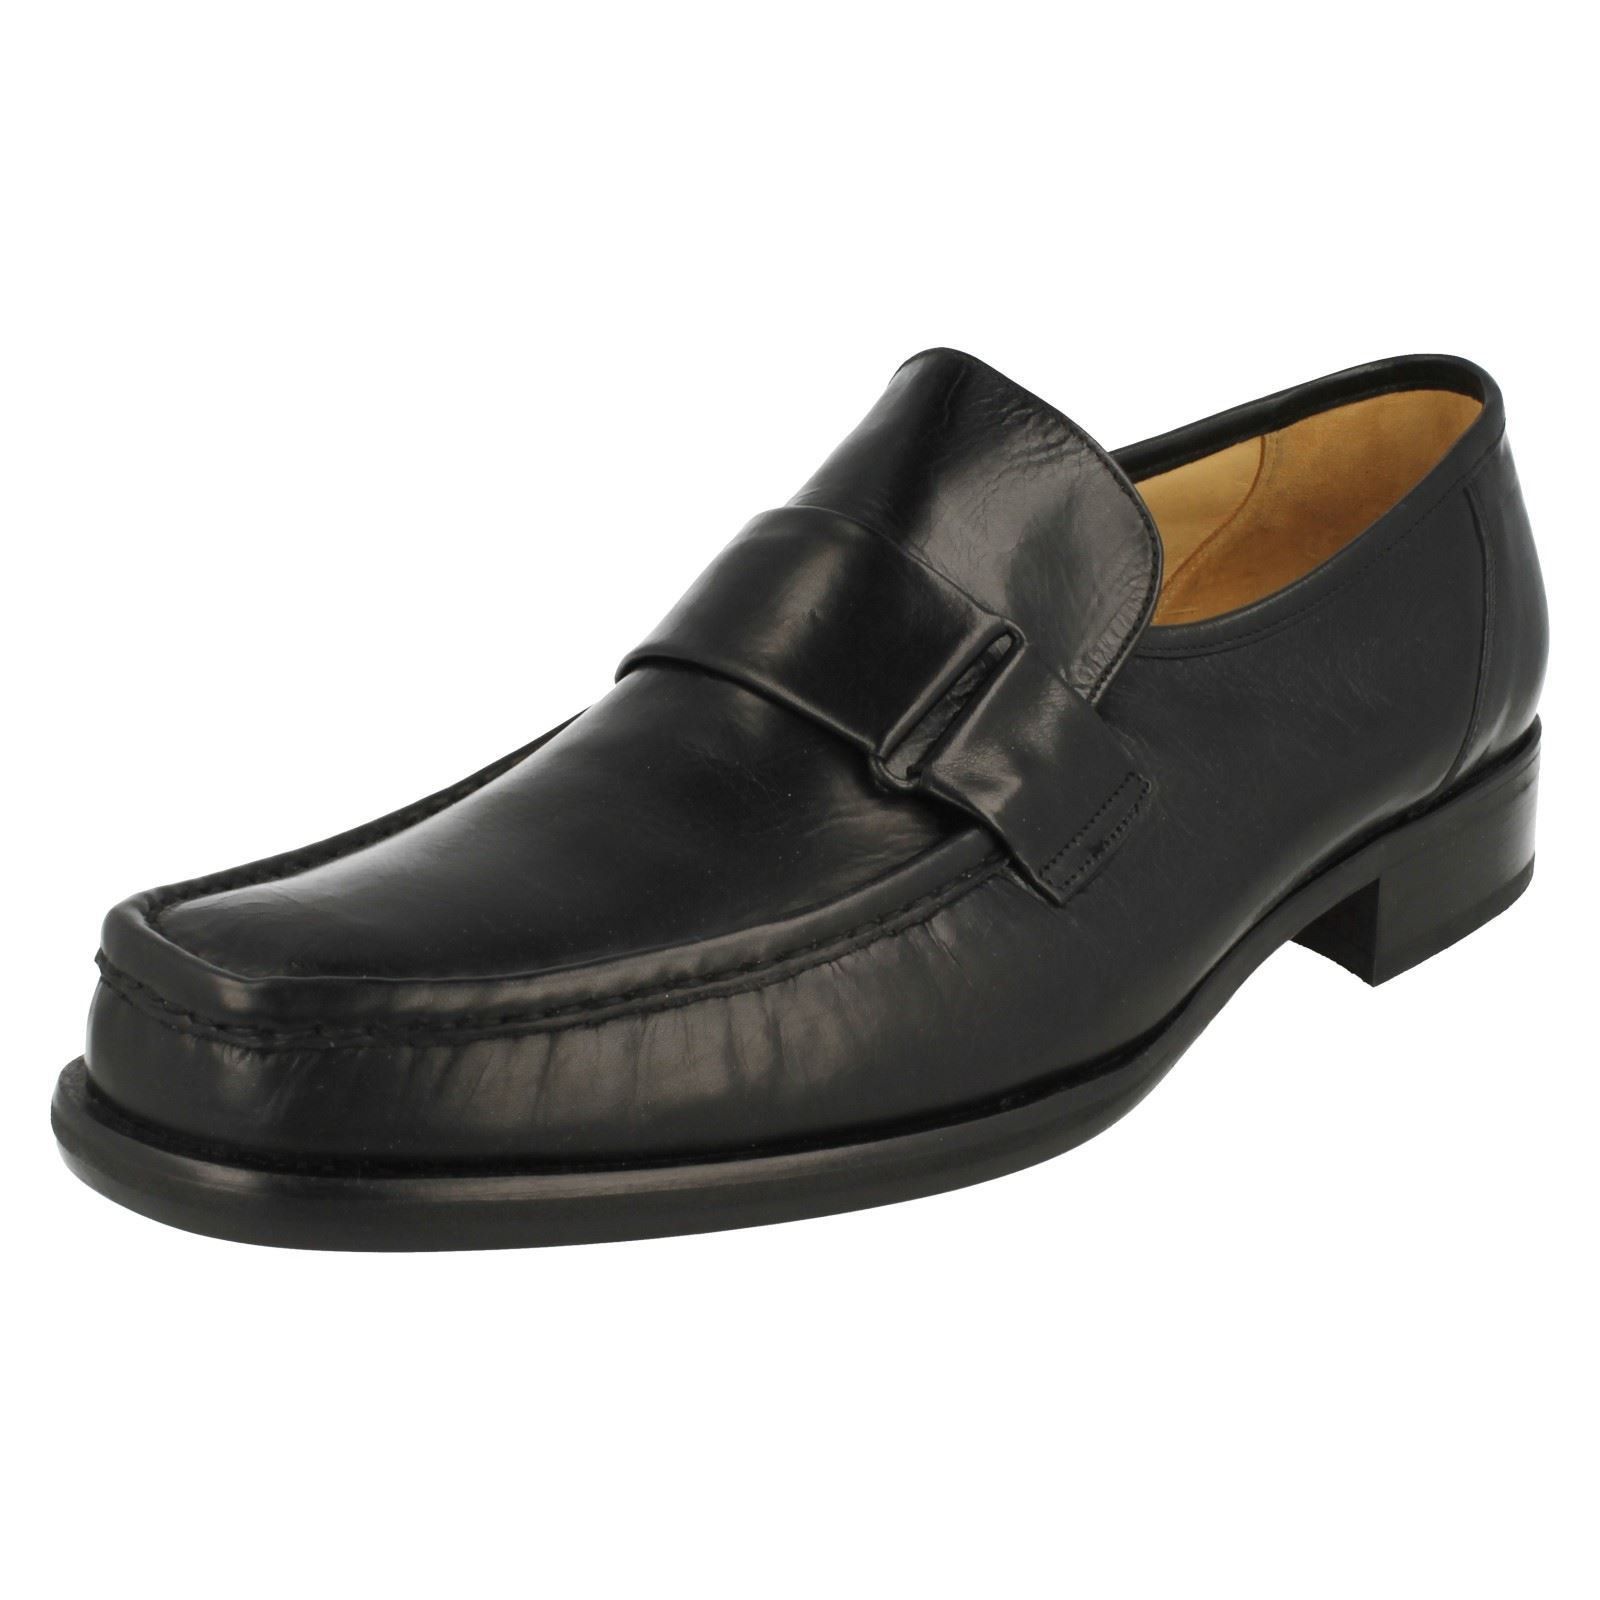 Mens Grenson Moccasin Leather Slip On Shoes - Dirk